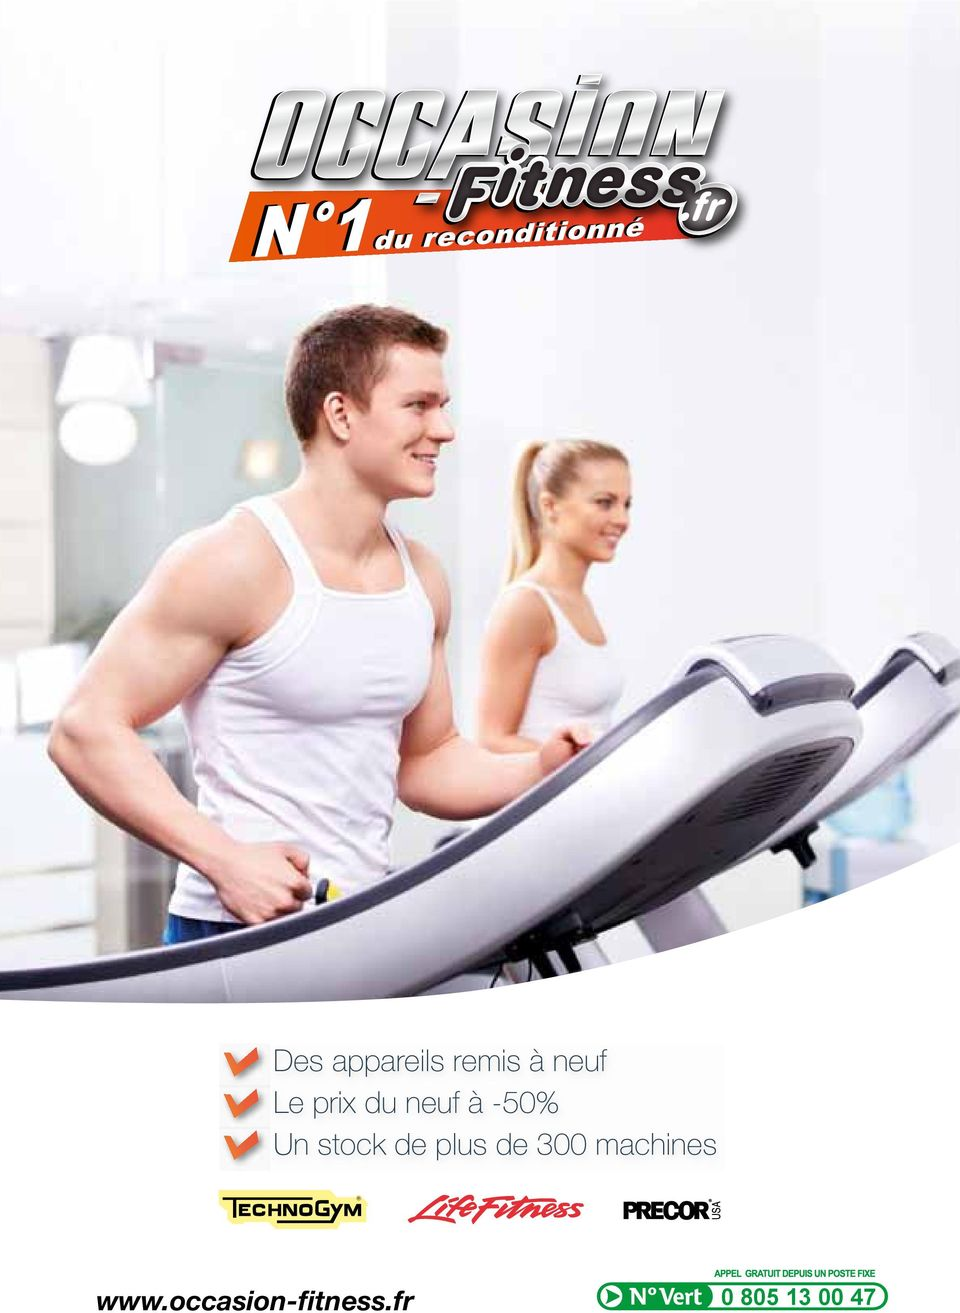 de plus de 300 machines www.